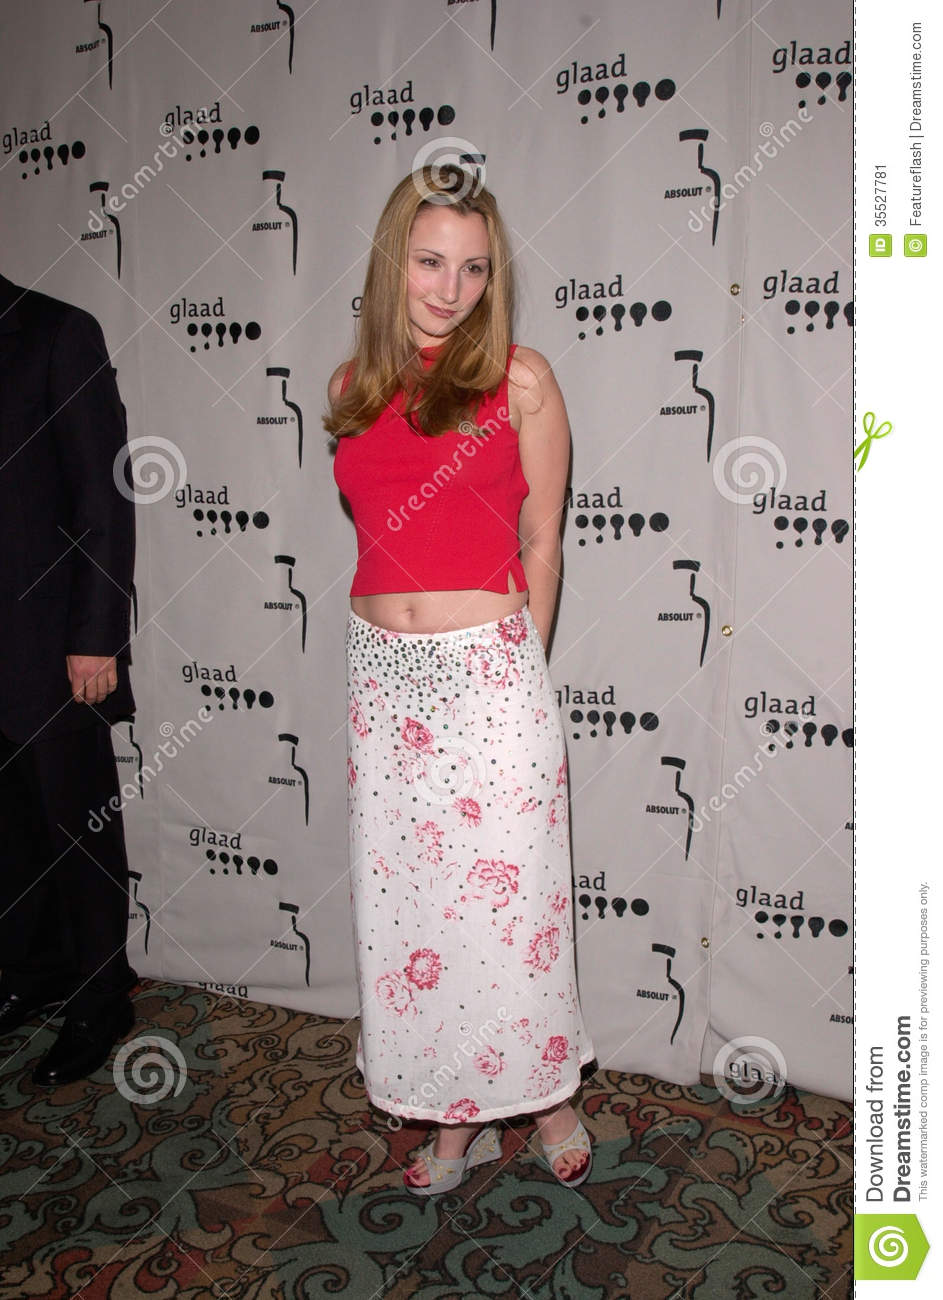 HEATHER McCOMB at the Gay & Lesbian Alliance Against Defamation ...: www.dreamstime.com/stock-image-mccomb-heather-apr-actress-gay...